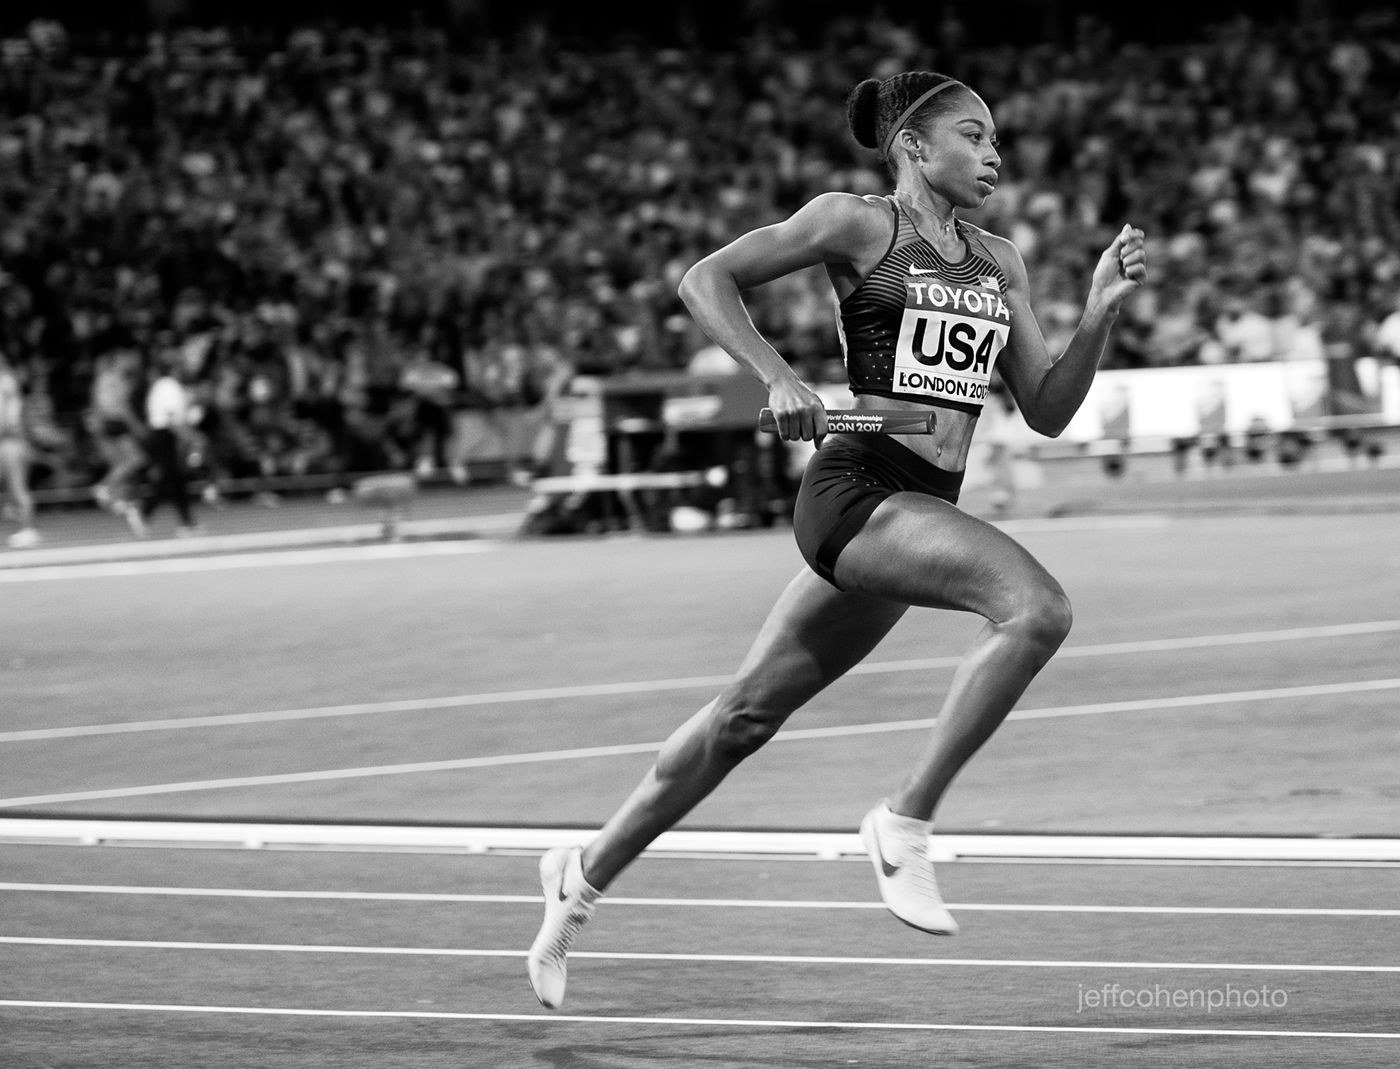 2017-IAAF-WC-London-night10-felix-4x400w-bw--1940--jeff-cohen-photo--web.jpg